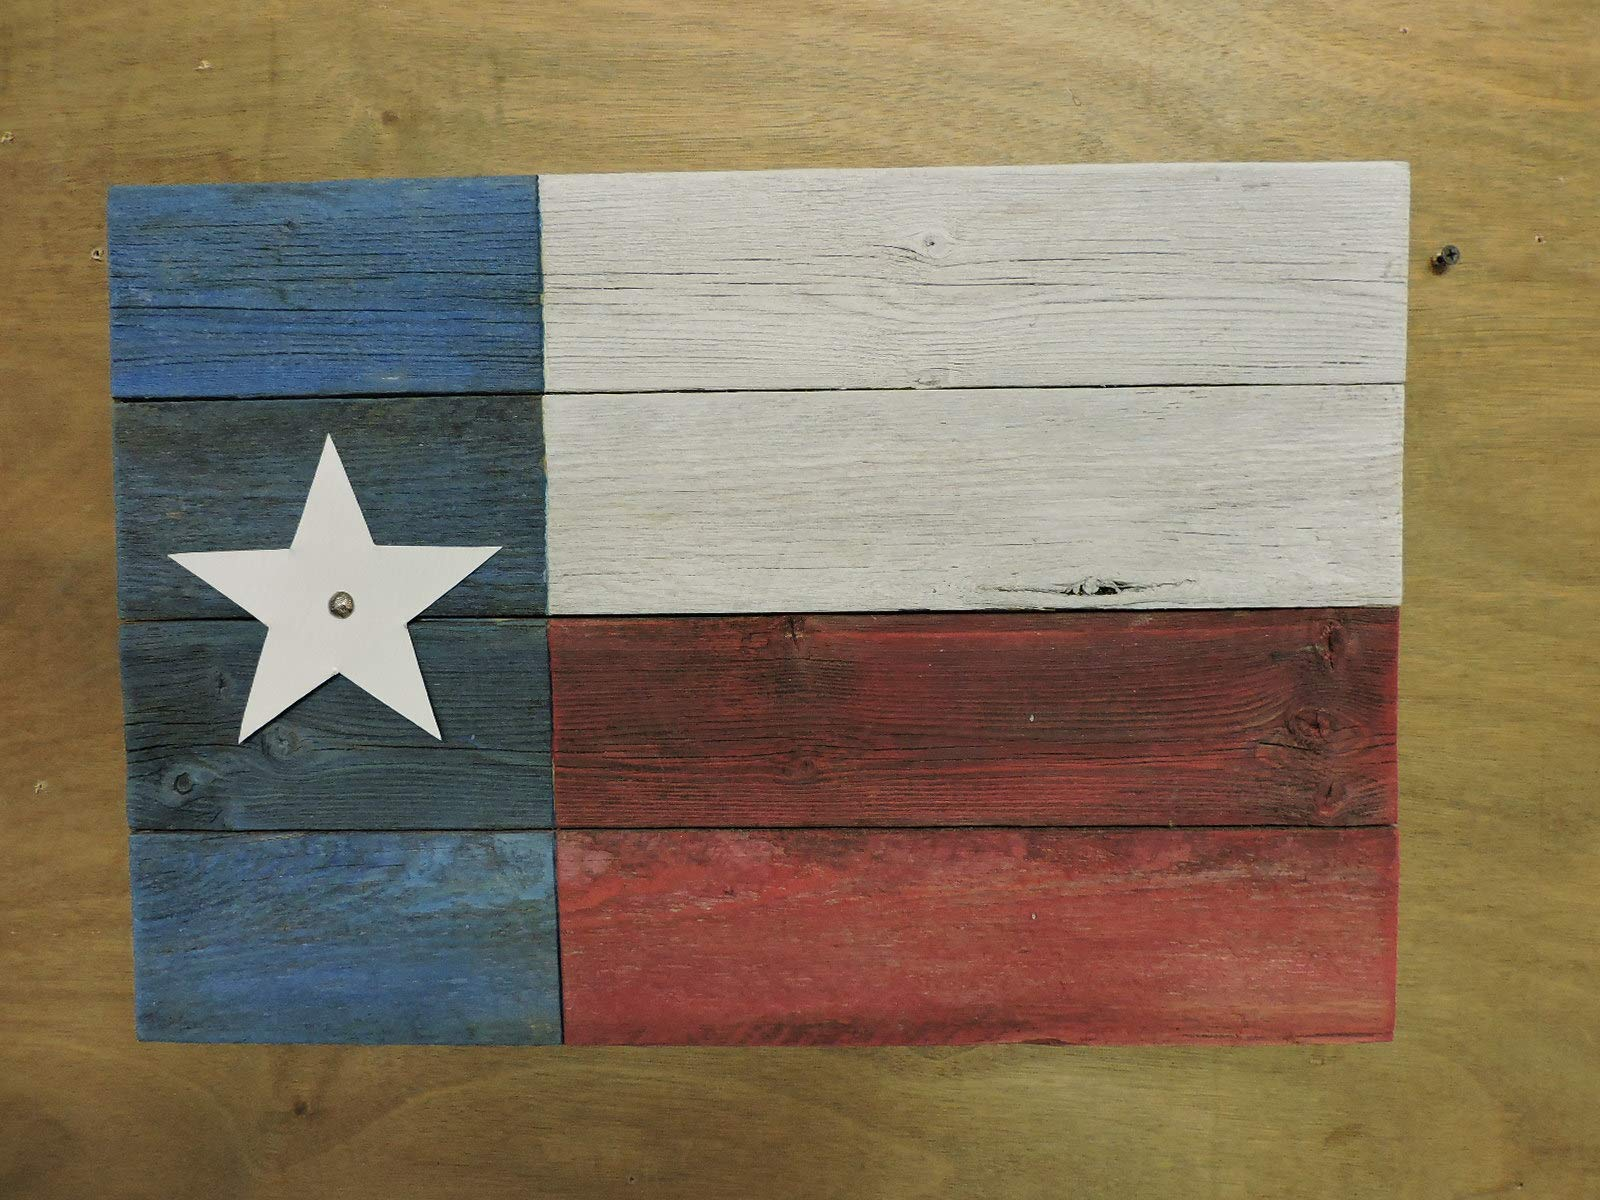 Texas Flag (#7S) made from recycled Fence Boards; Rustic Decor Texas Flag; Weather-look/Distressed Paint